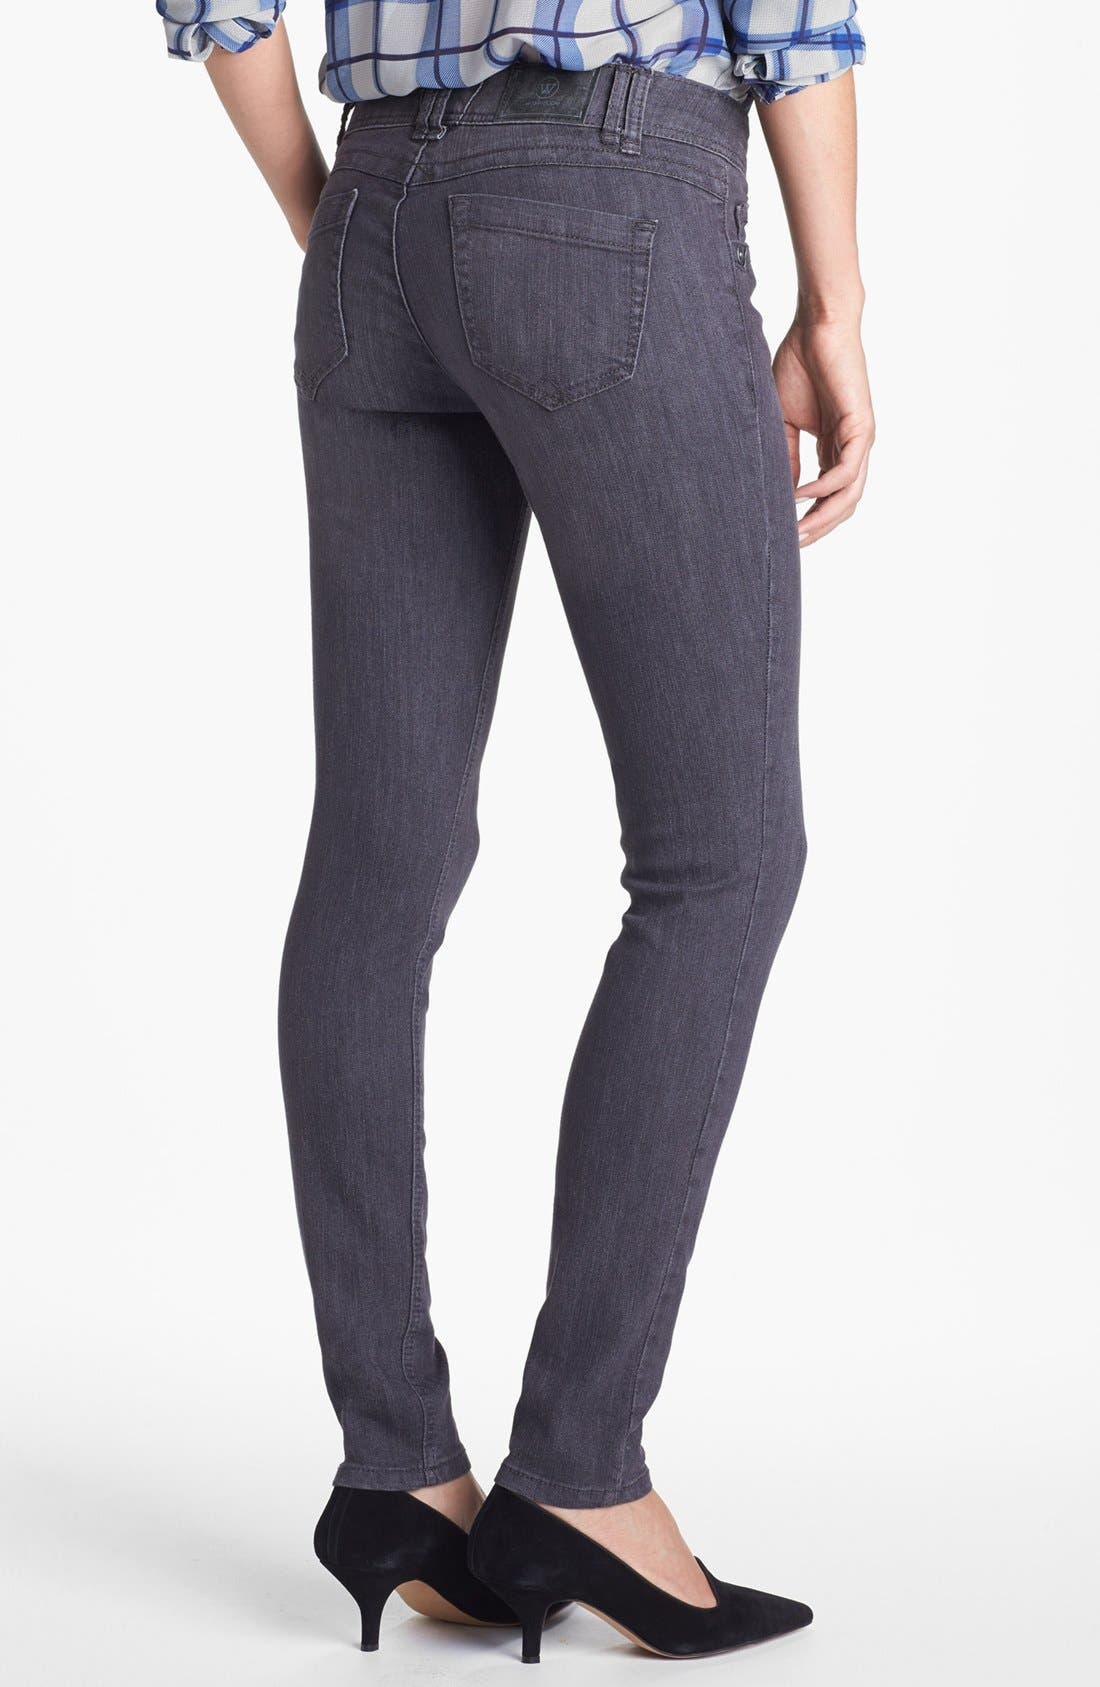 Alternate Image 2  - Wit & Wisdom Skinny Jeans (Dark Grey) (Nordstrom Exclusive)